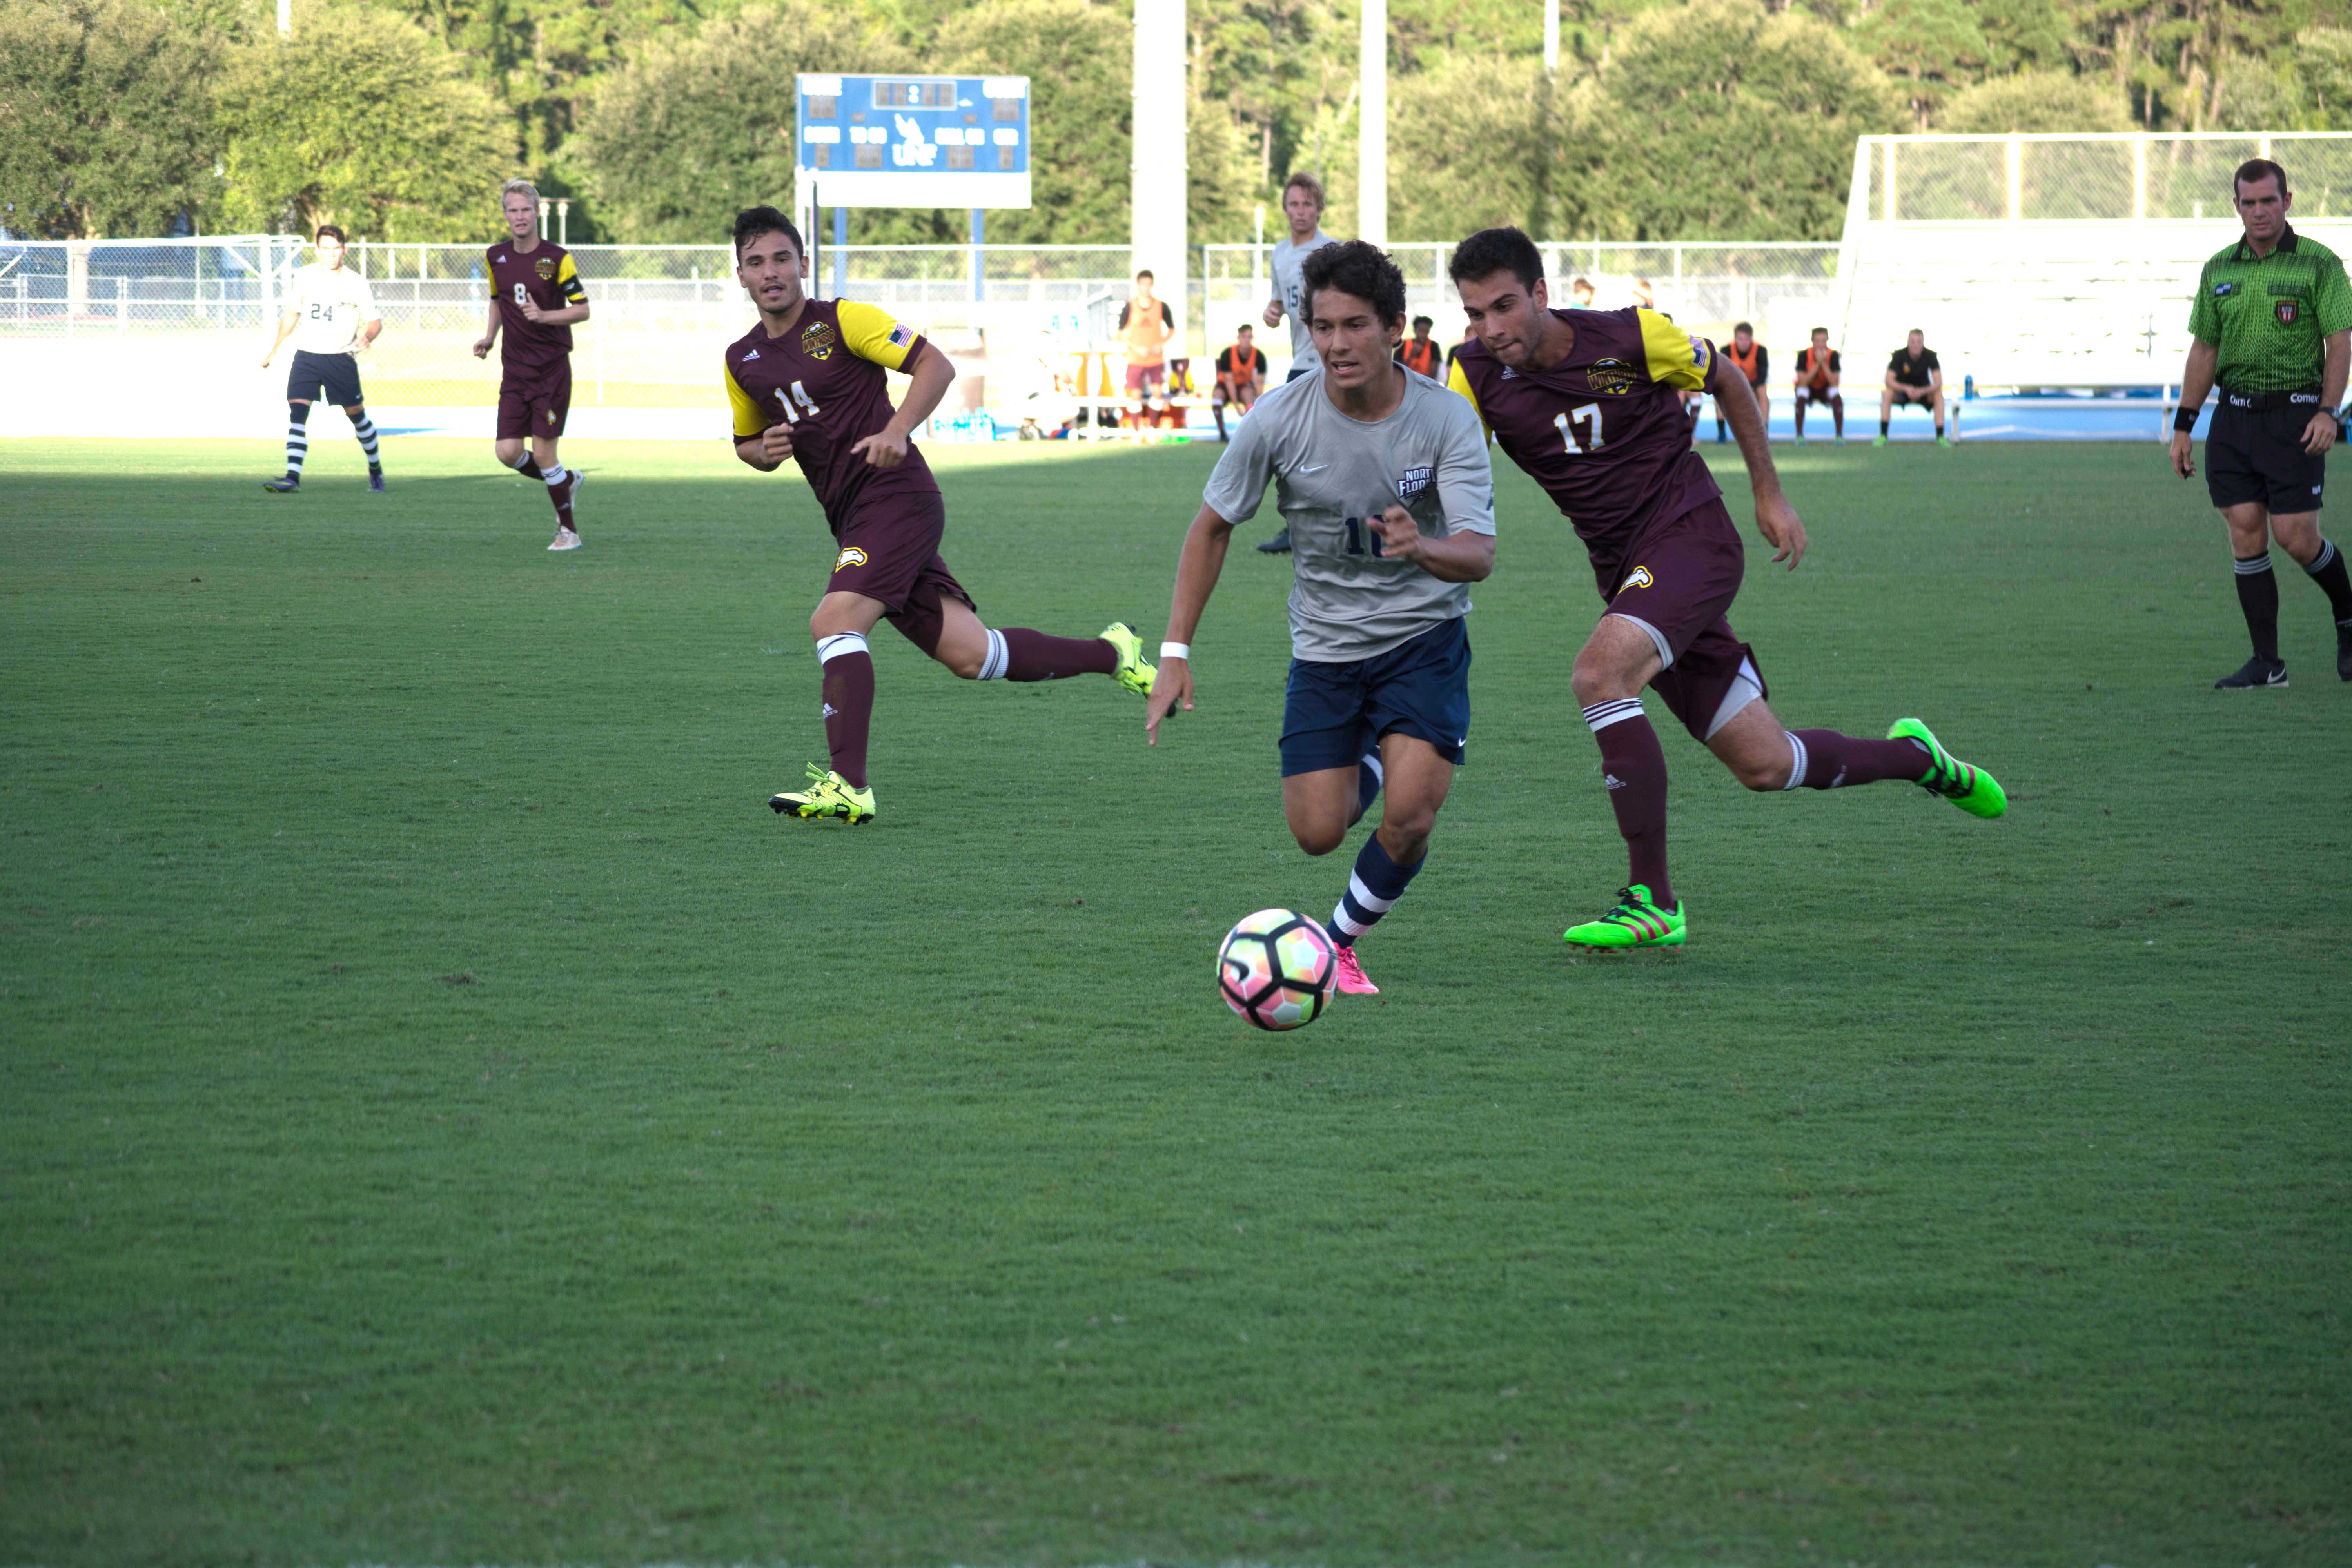 Student athletes come from around the world to be Ospreys